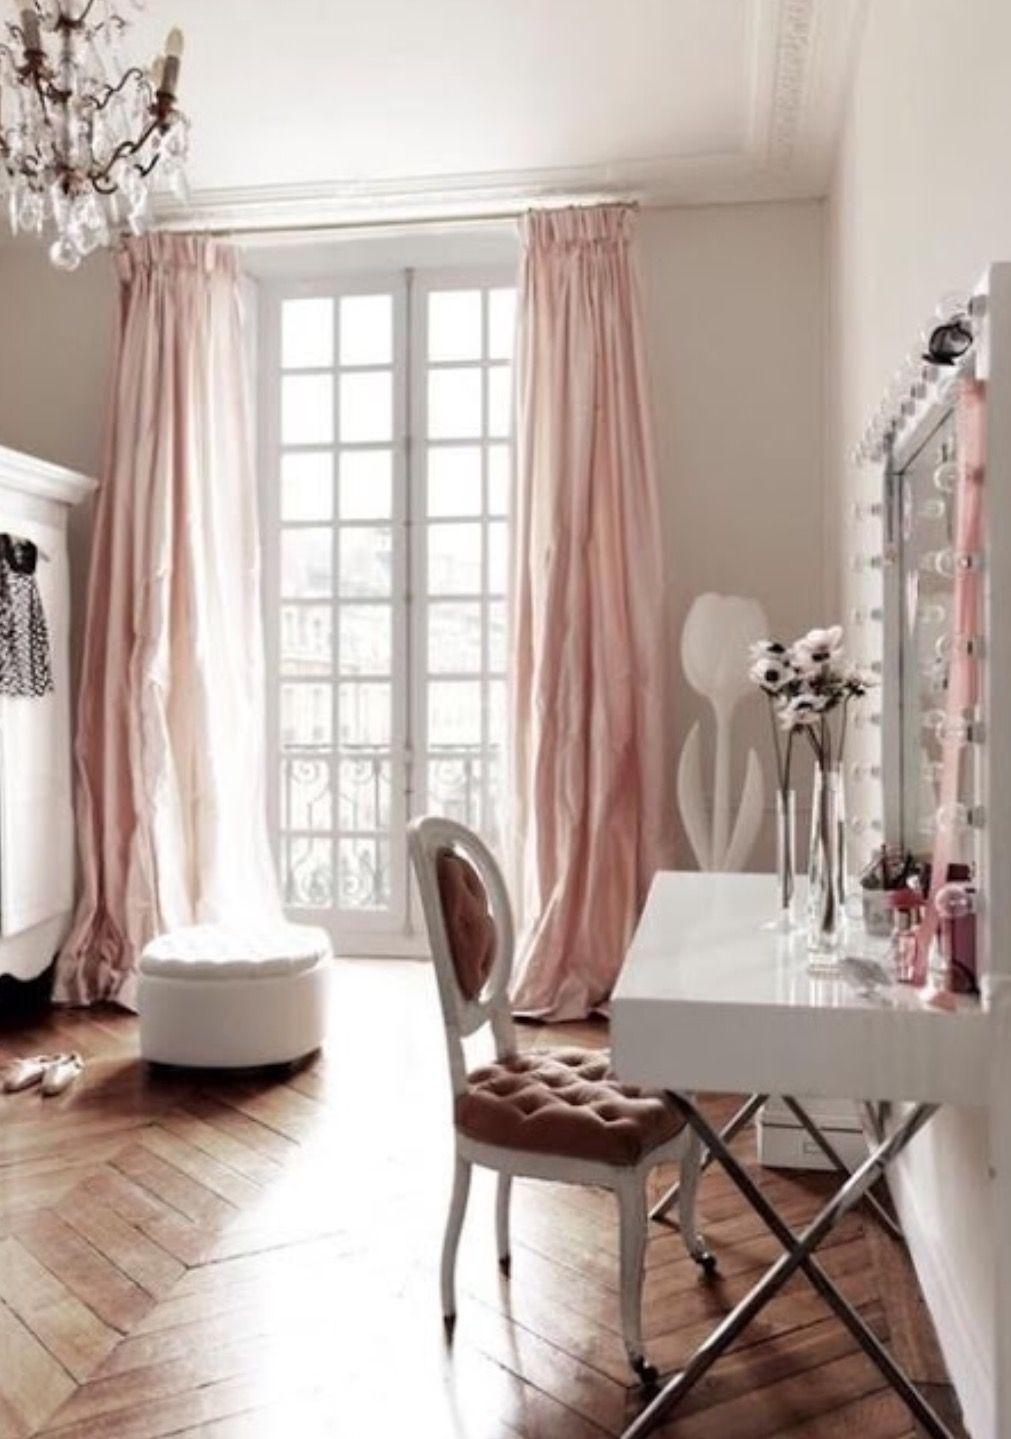 Above window decor  mirror above window for this effect  bedroom remake  pinterest